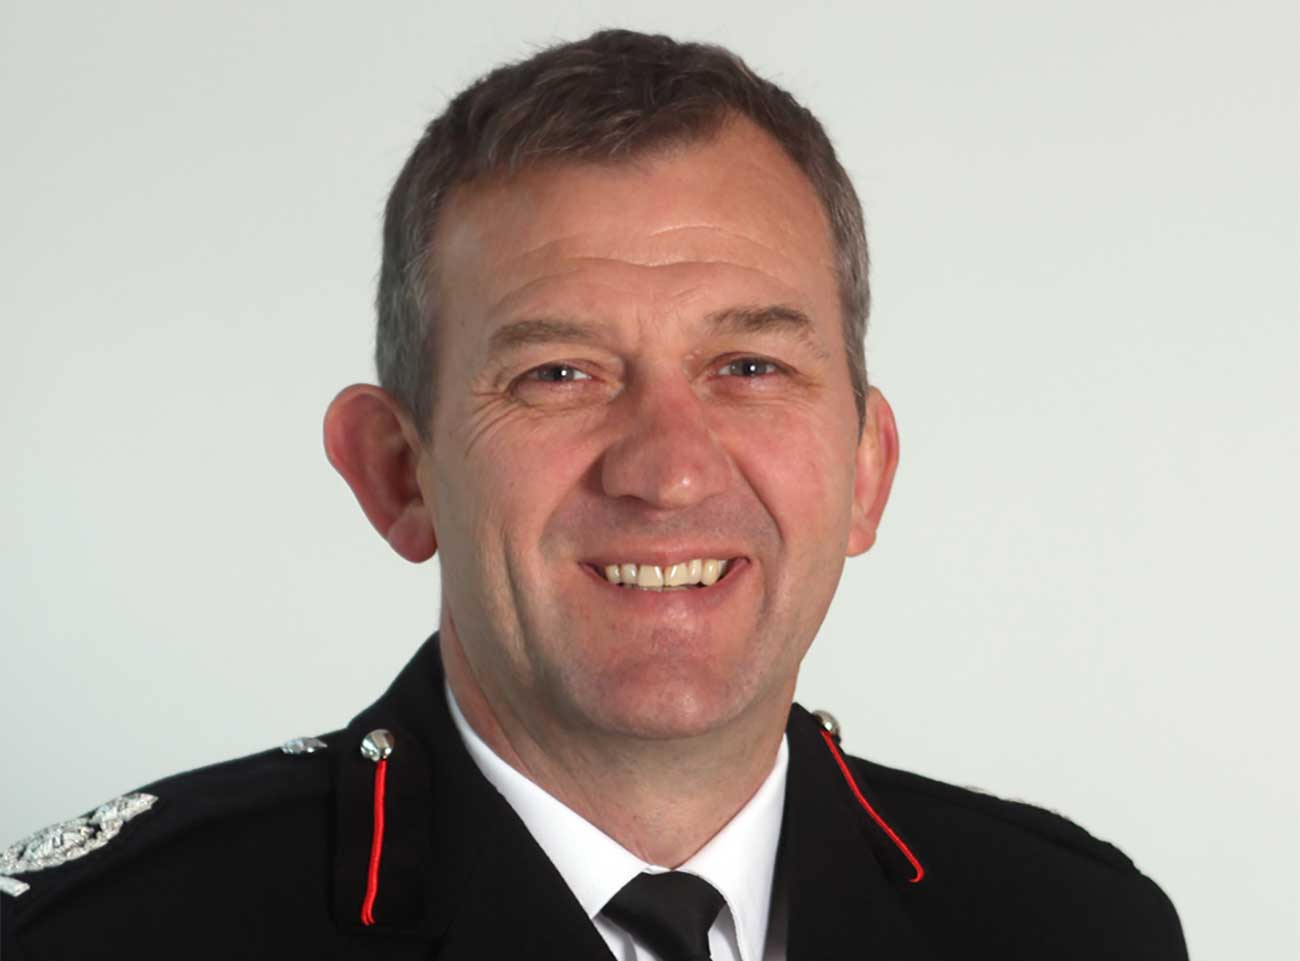 Shropshire's newly appointed Chief Fire Officer Rod Hammerton